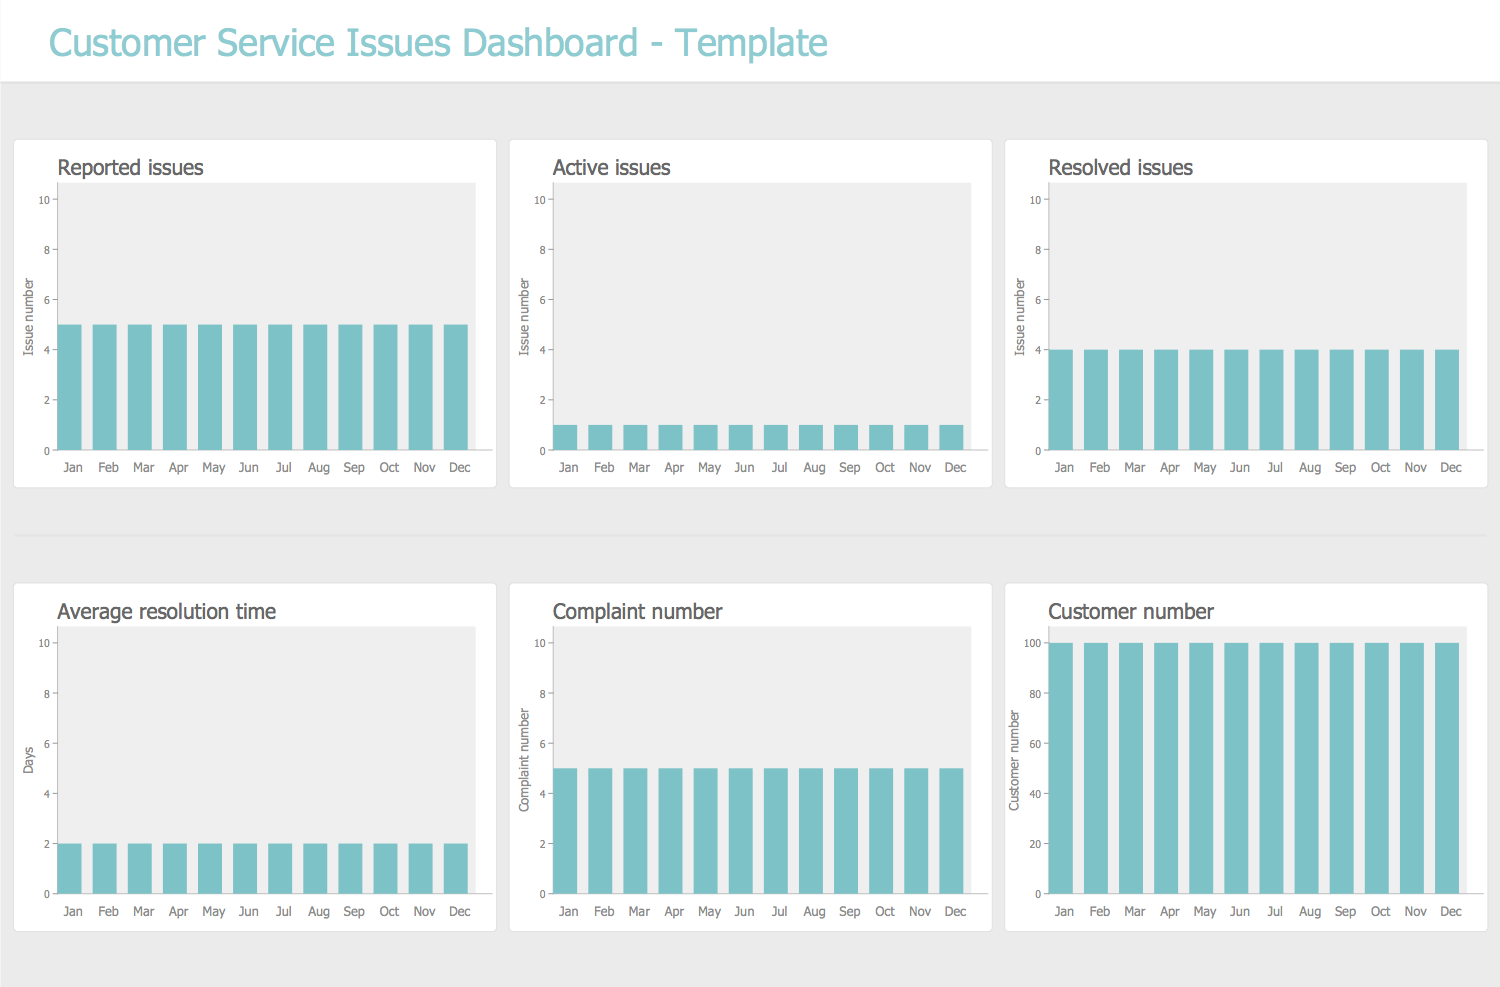 Customer Service Issues Dashboard Template